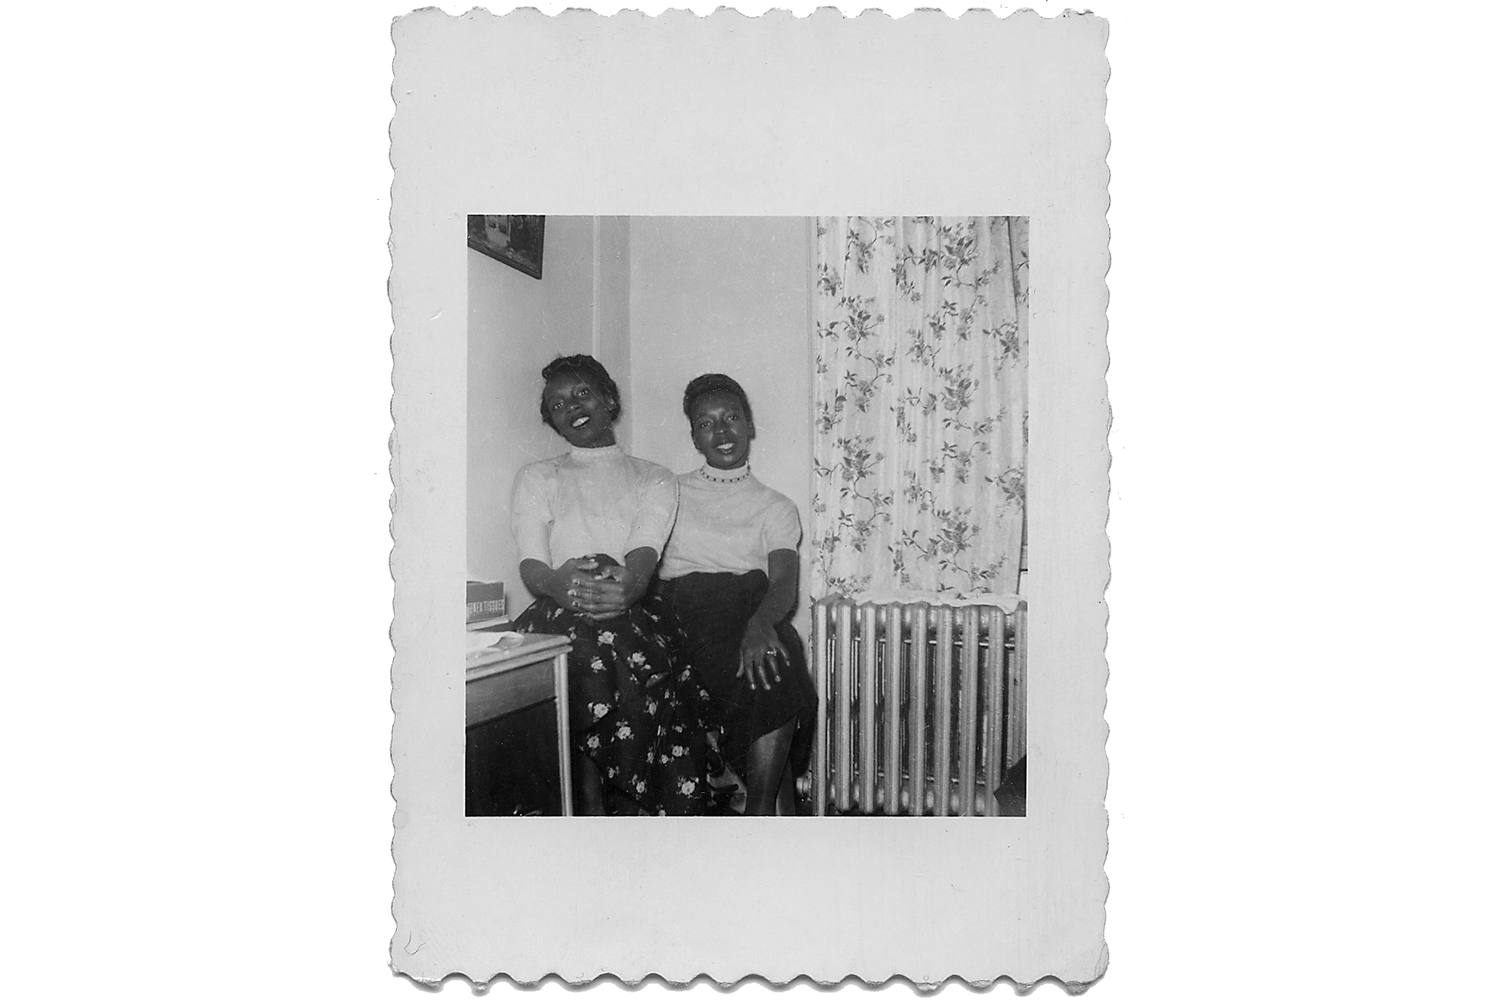 Rosa Lee Outten and friend, c. 1951